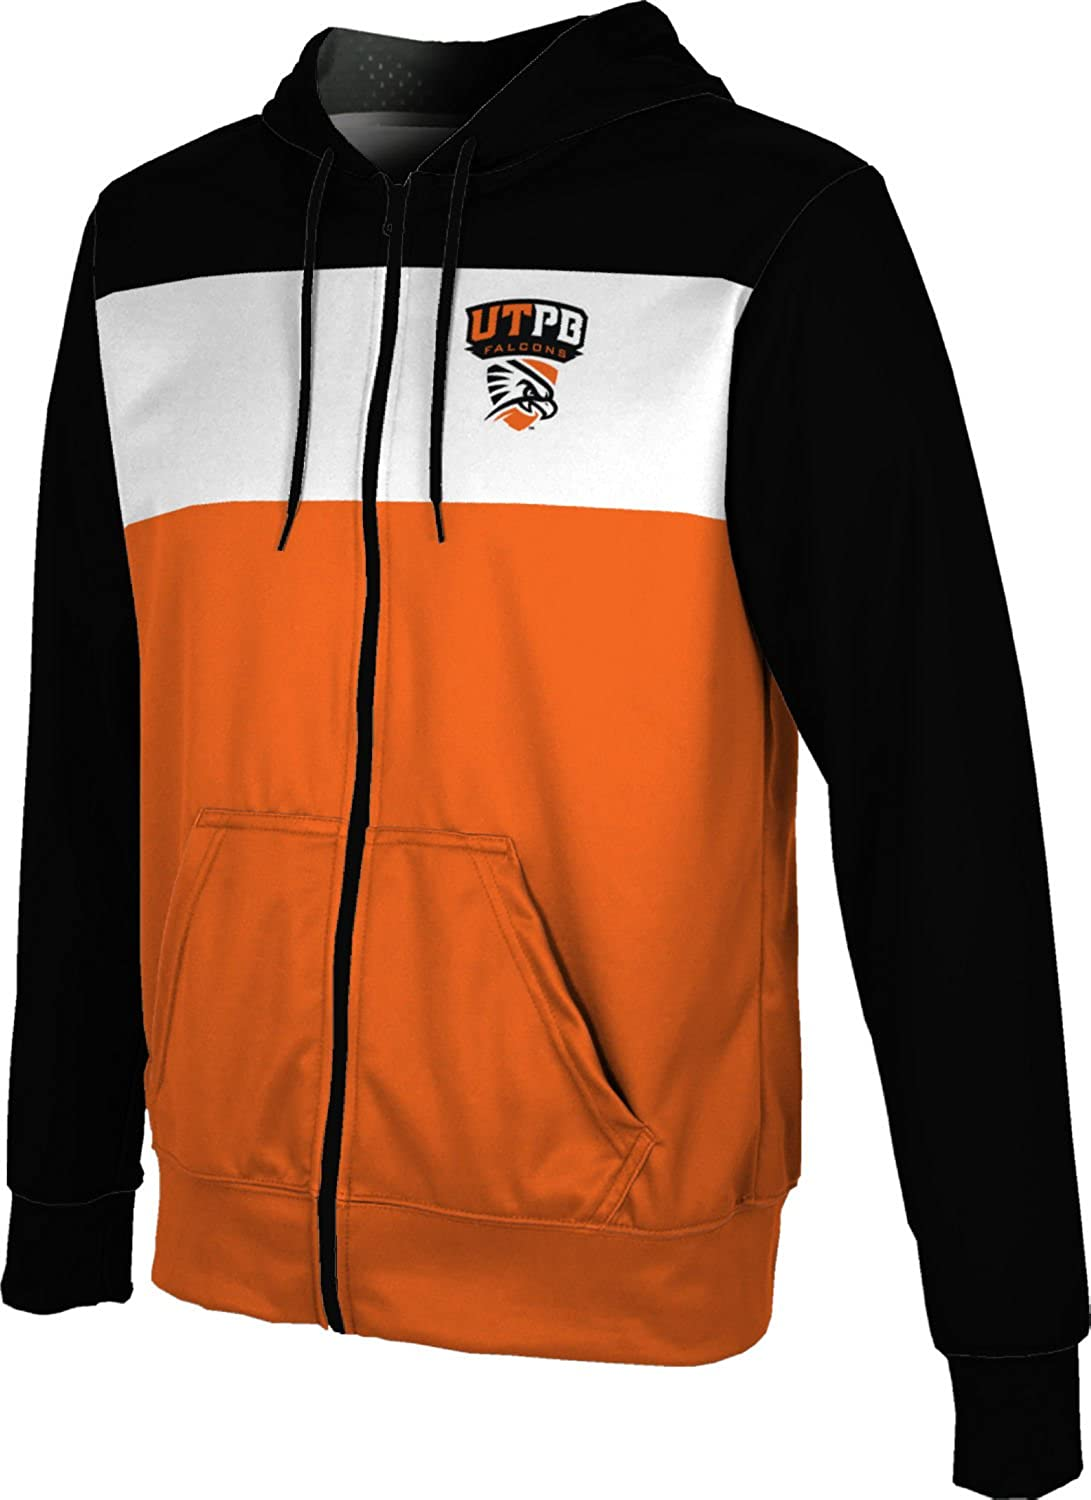 Prime The University of Texas of The Permian Basin Boys Full Zip Hoodie